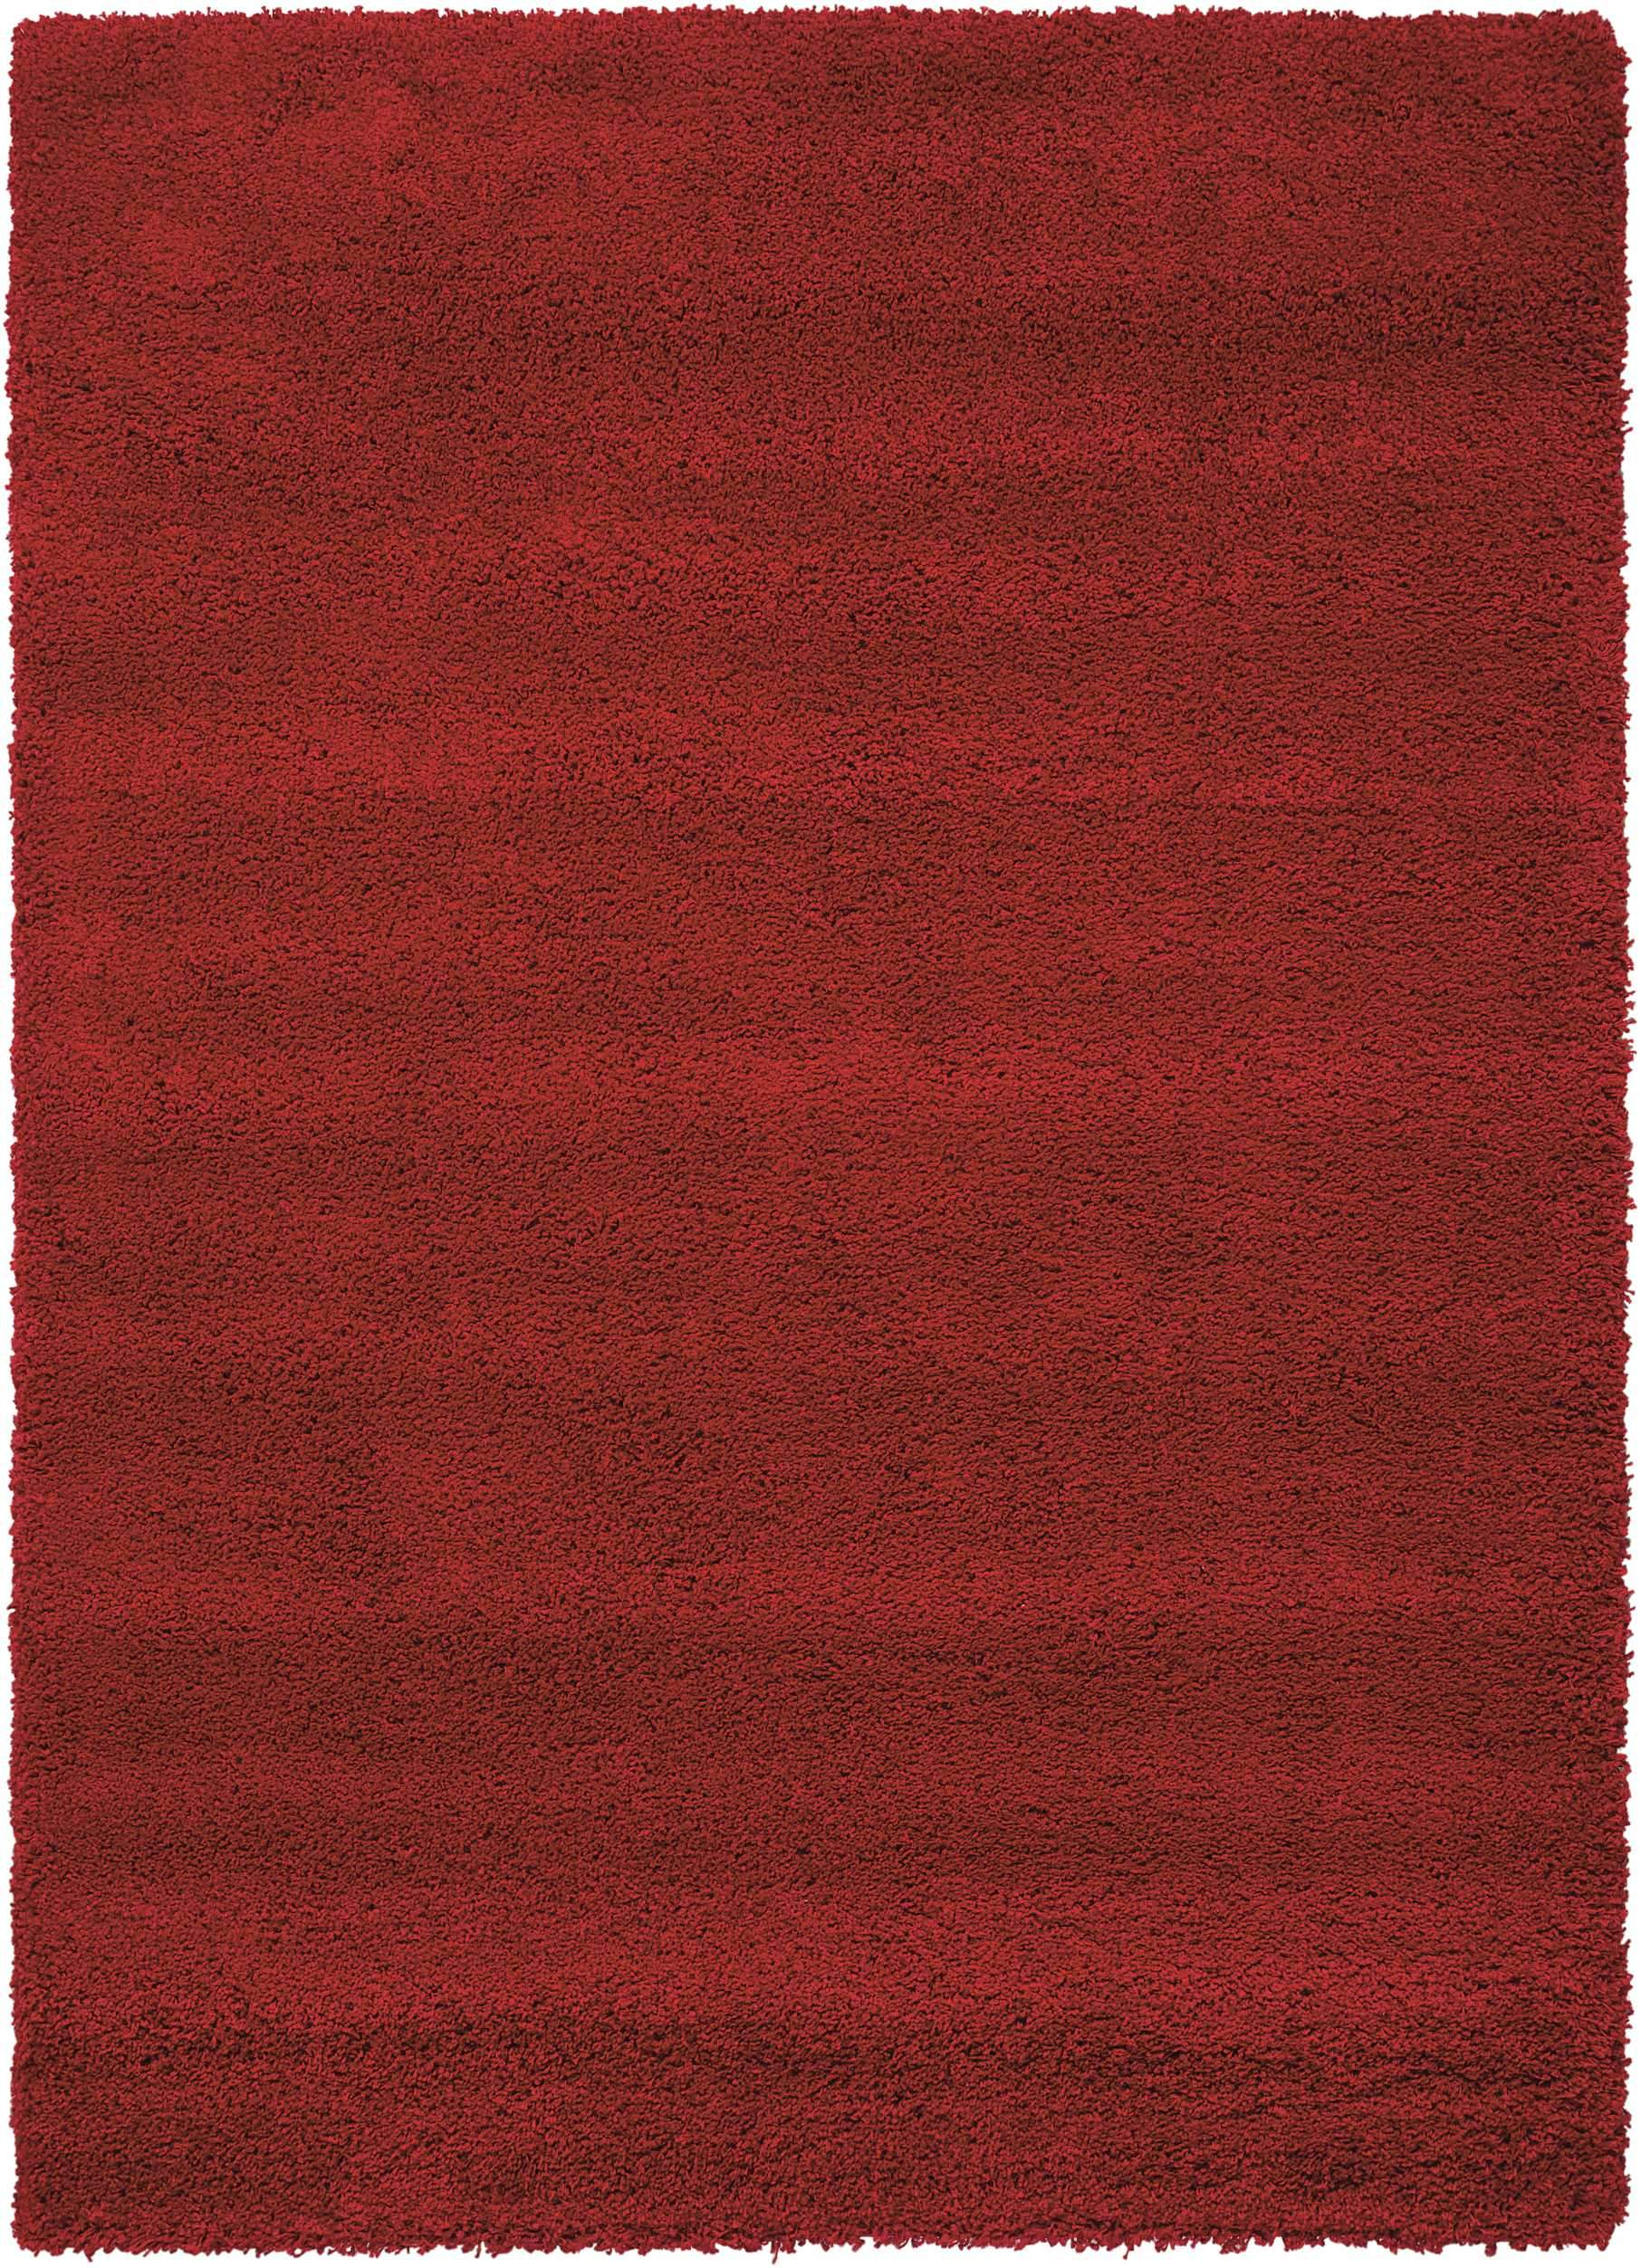 "Nourison Amore Red Shag Area Rug 3'11"" x 5'11"""